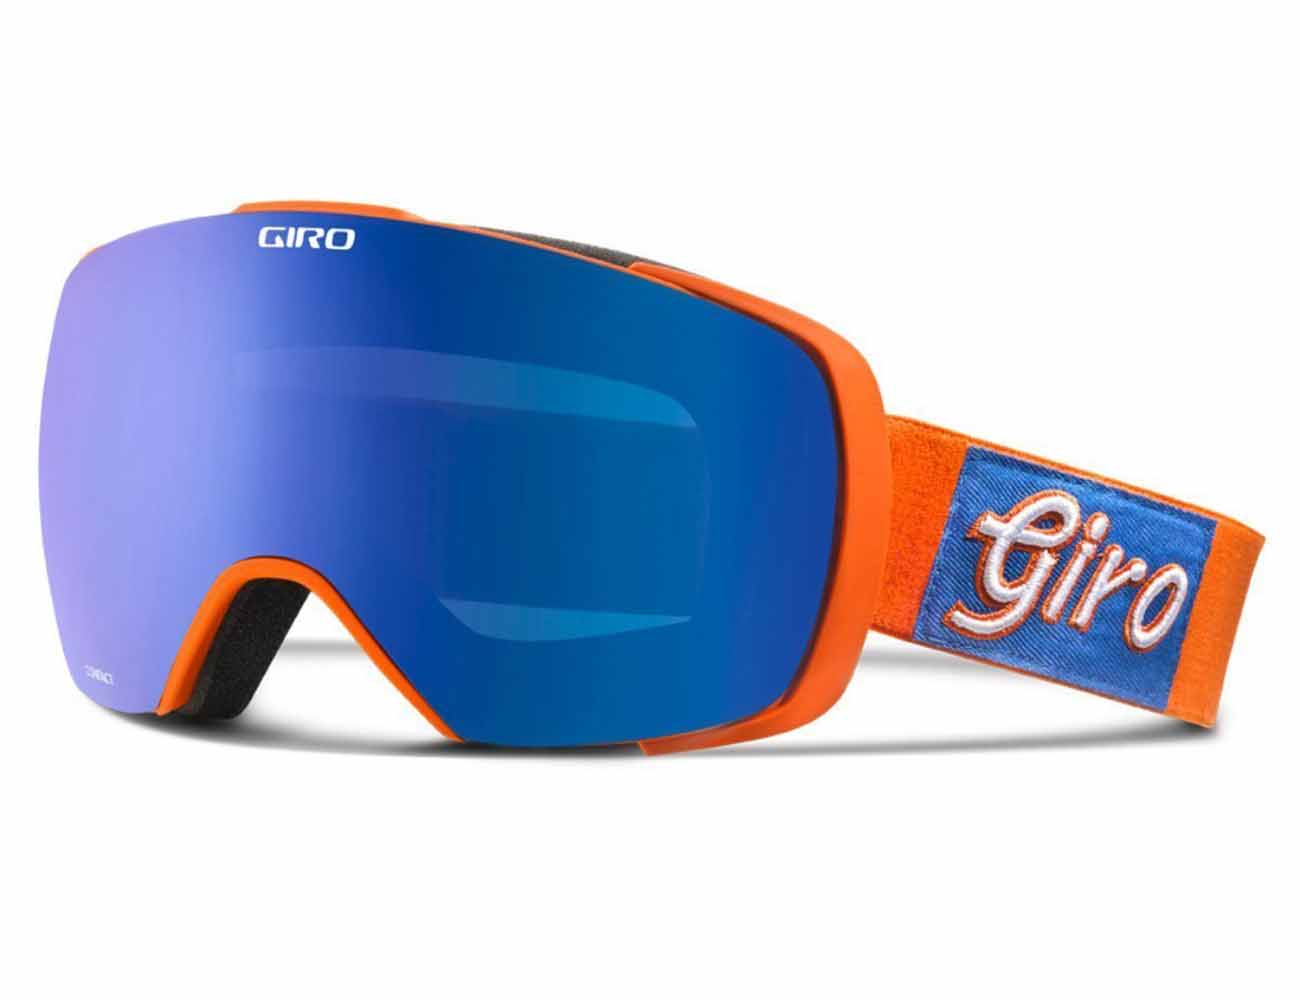 Giro Contact Goggles for Snow Sports